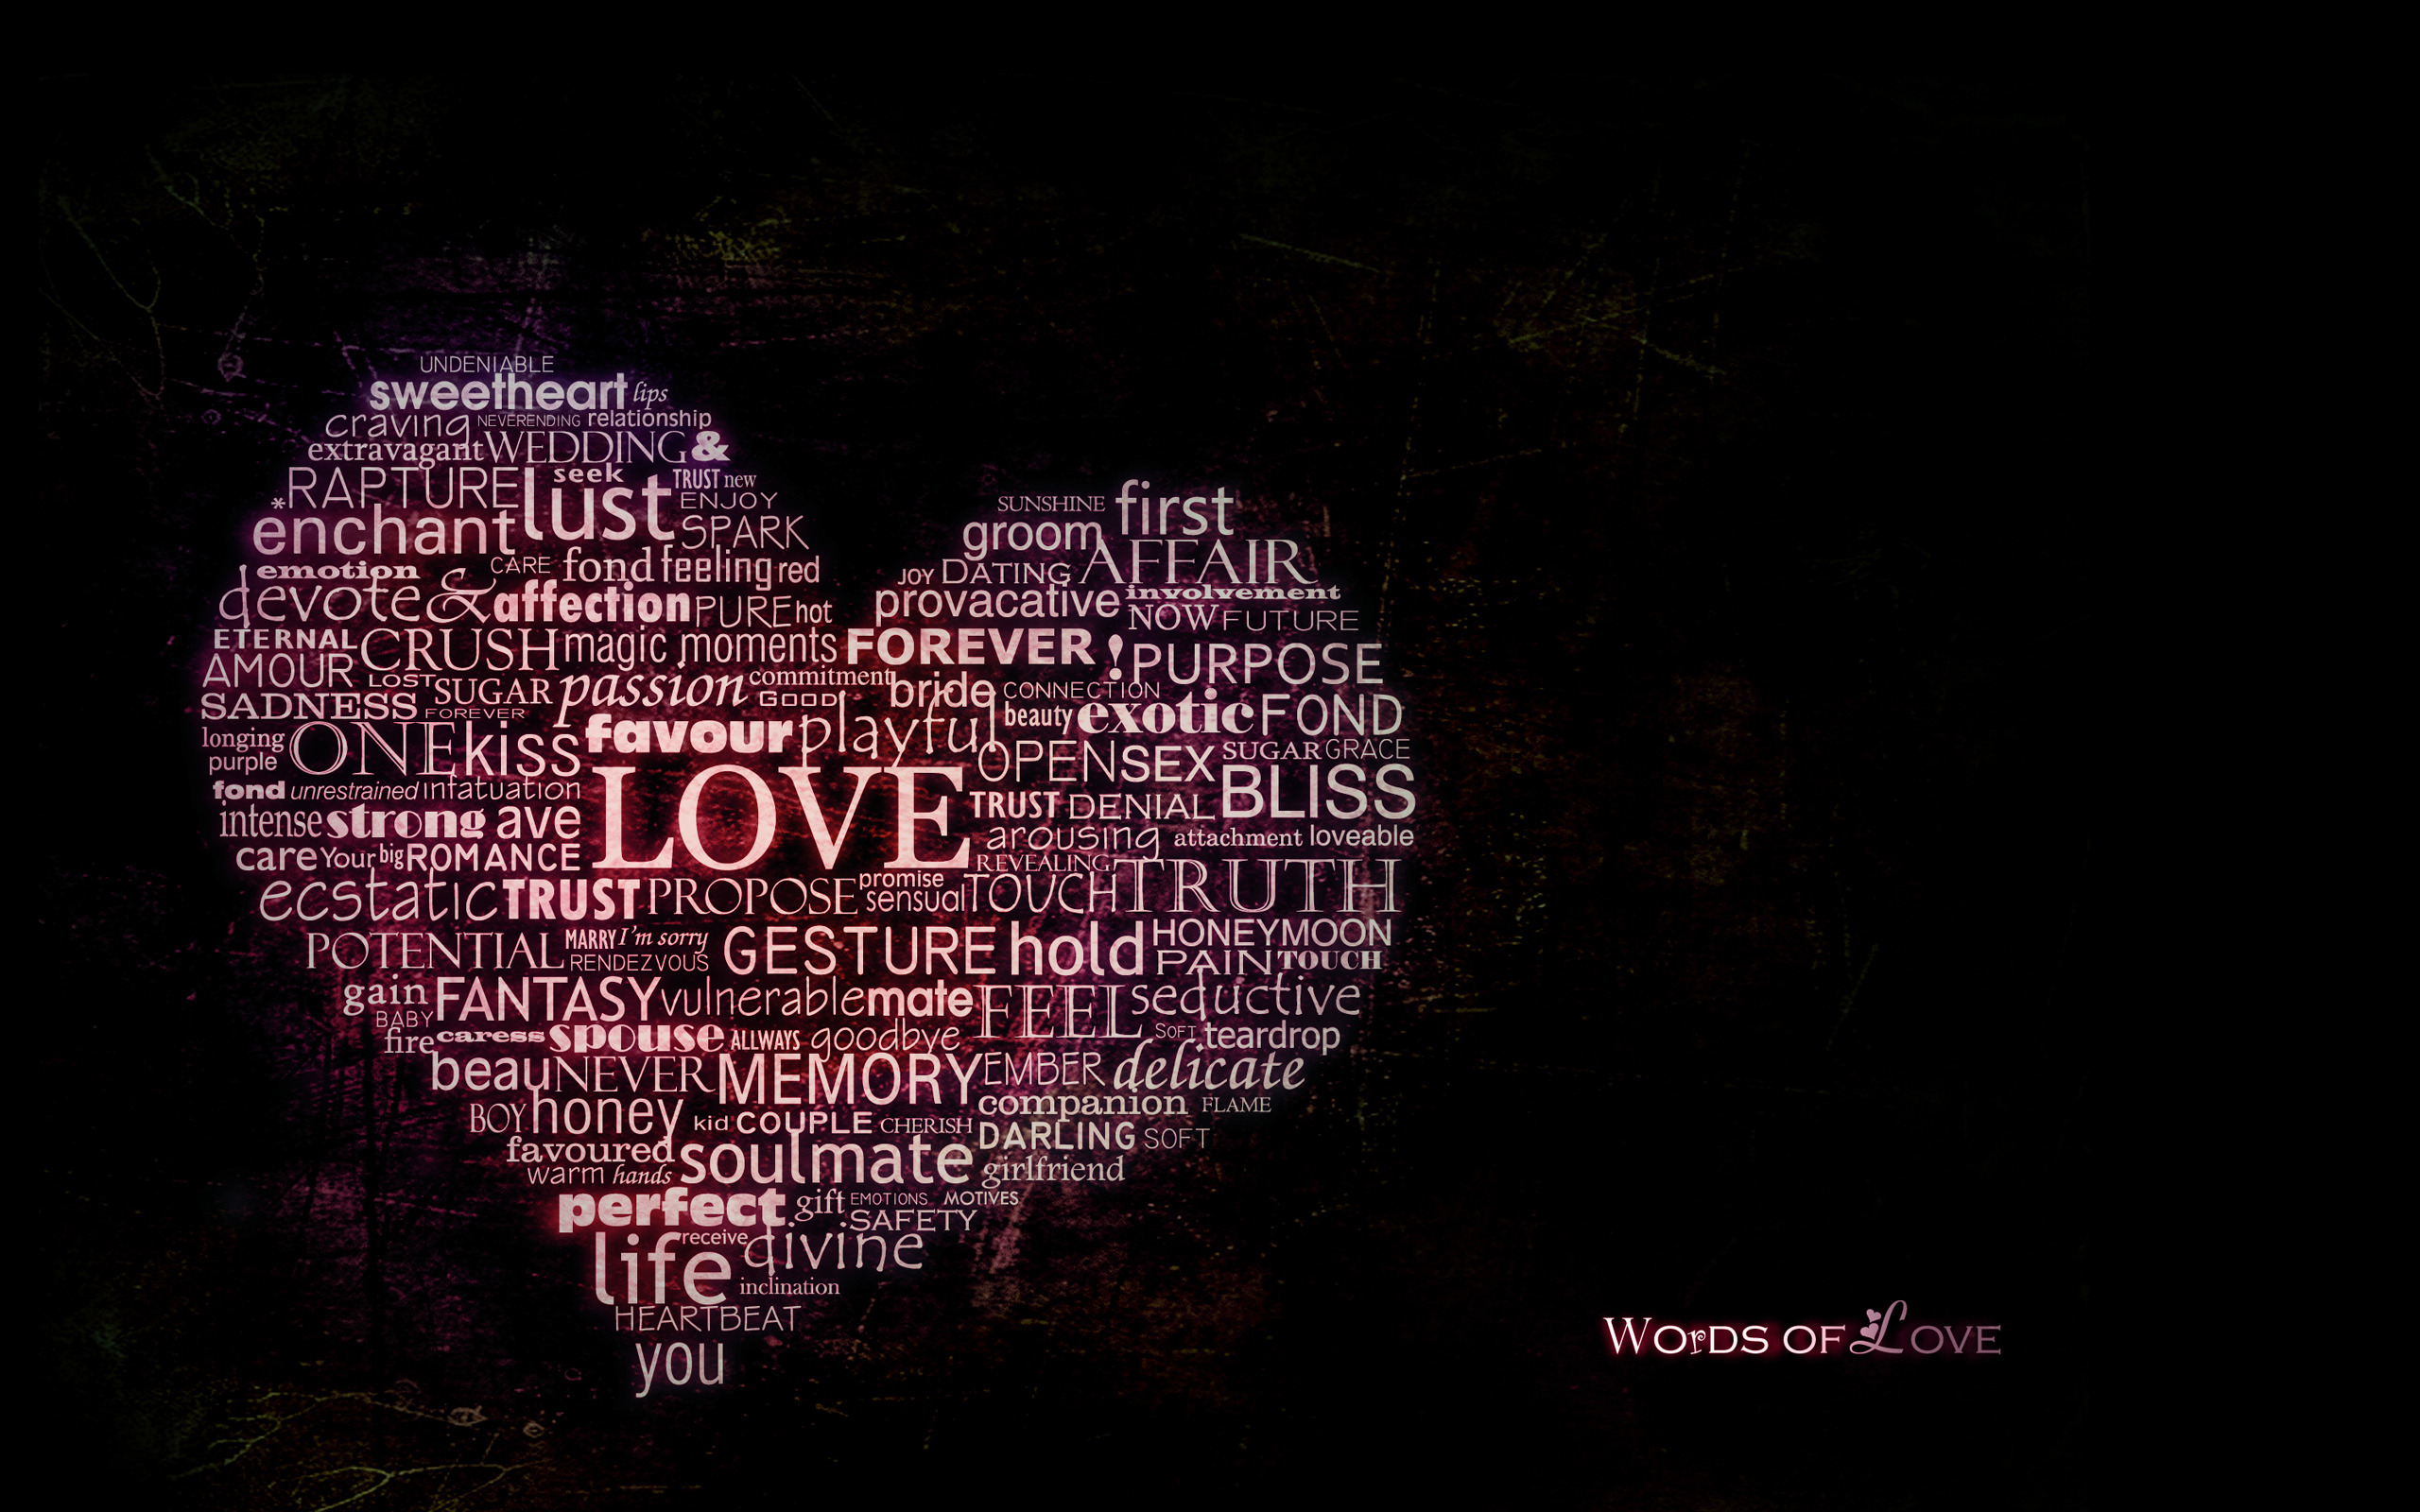 Love Wallpaper Hd 2014 : Love Wallpaper Laptop HD #4110 Wallpaper WallDiskPaper